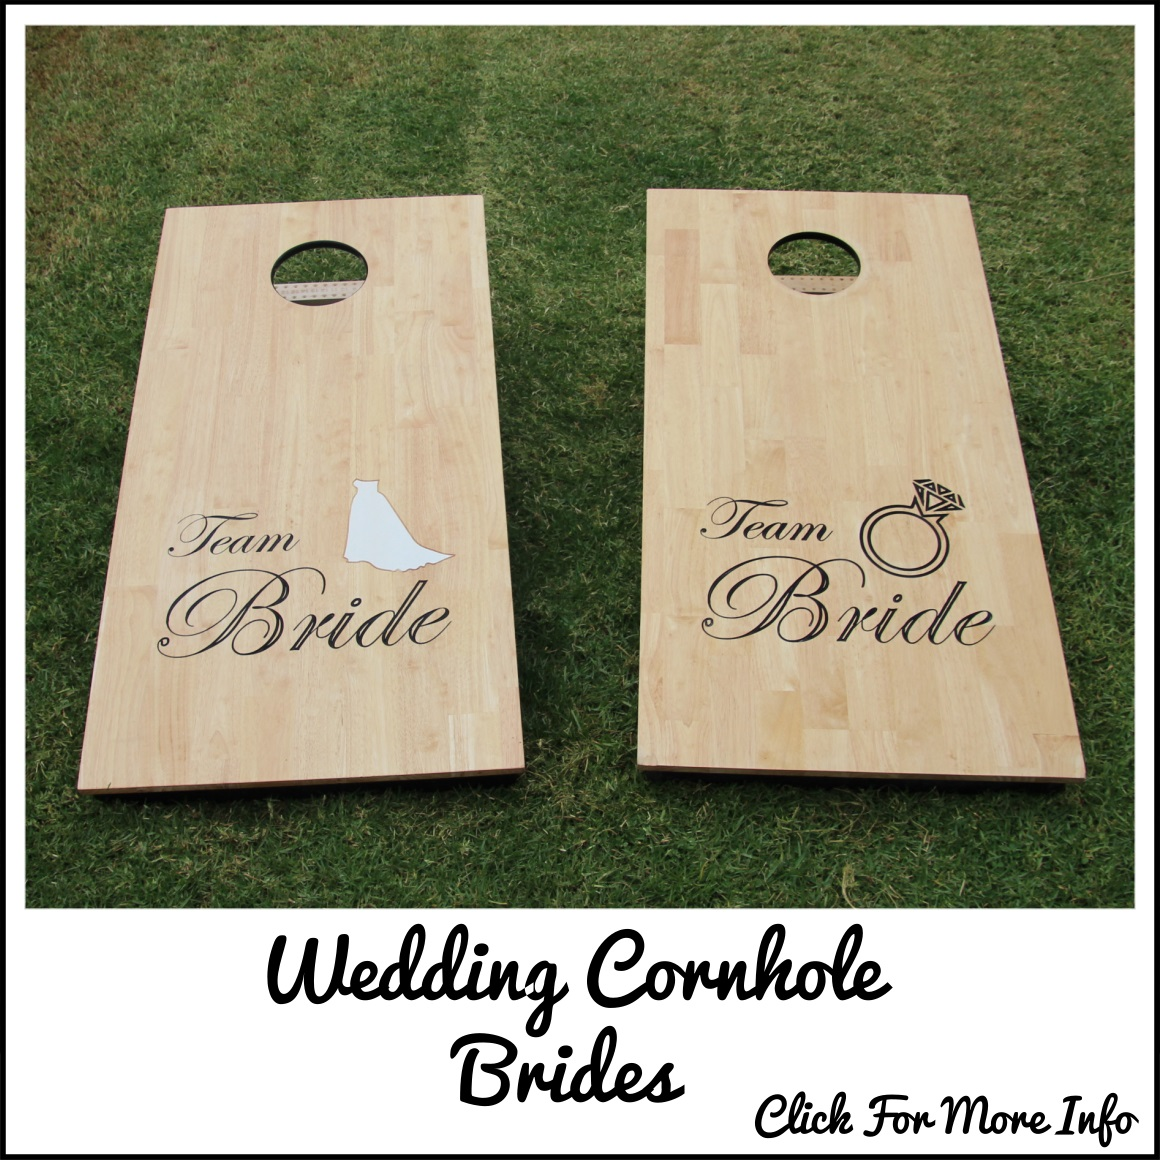 wife-cornhole-sex